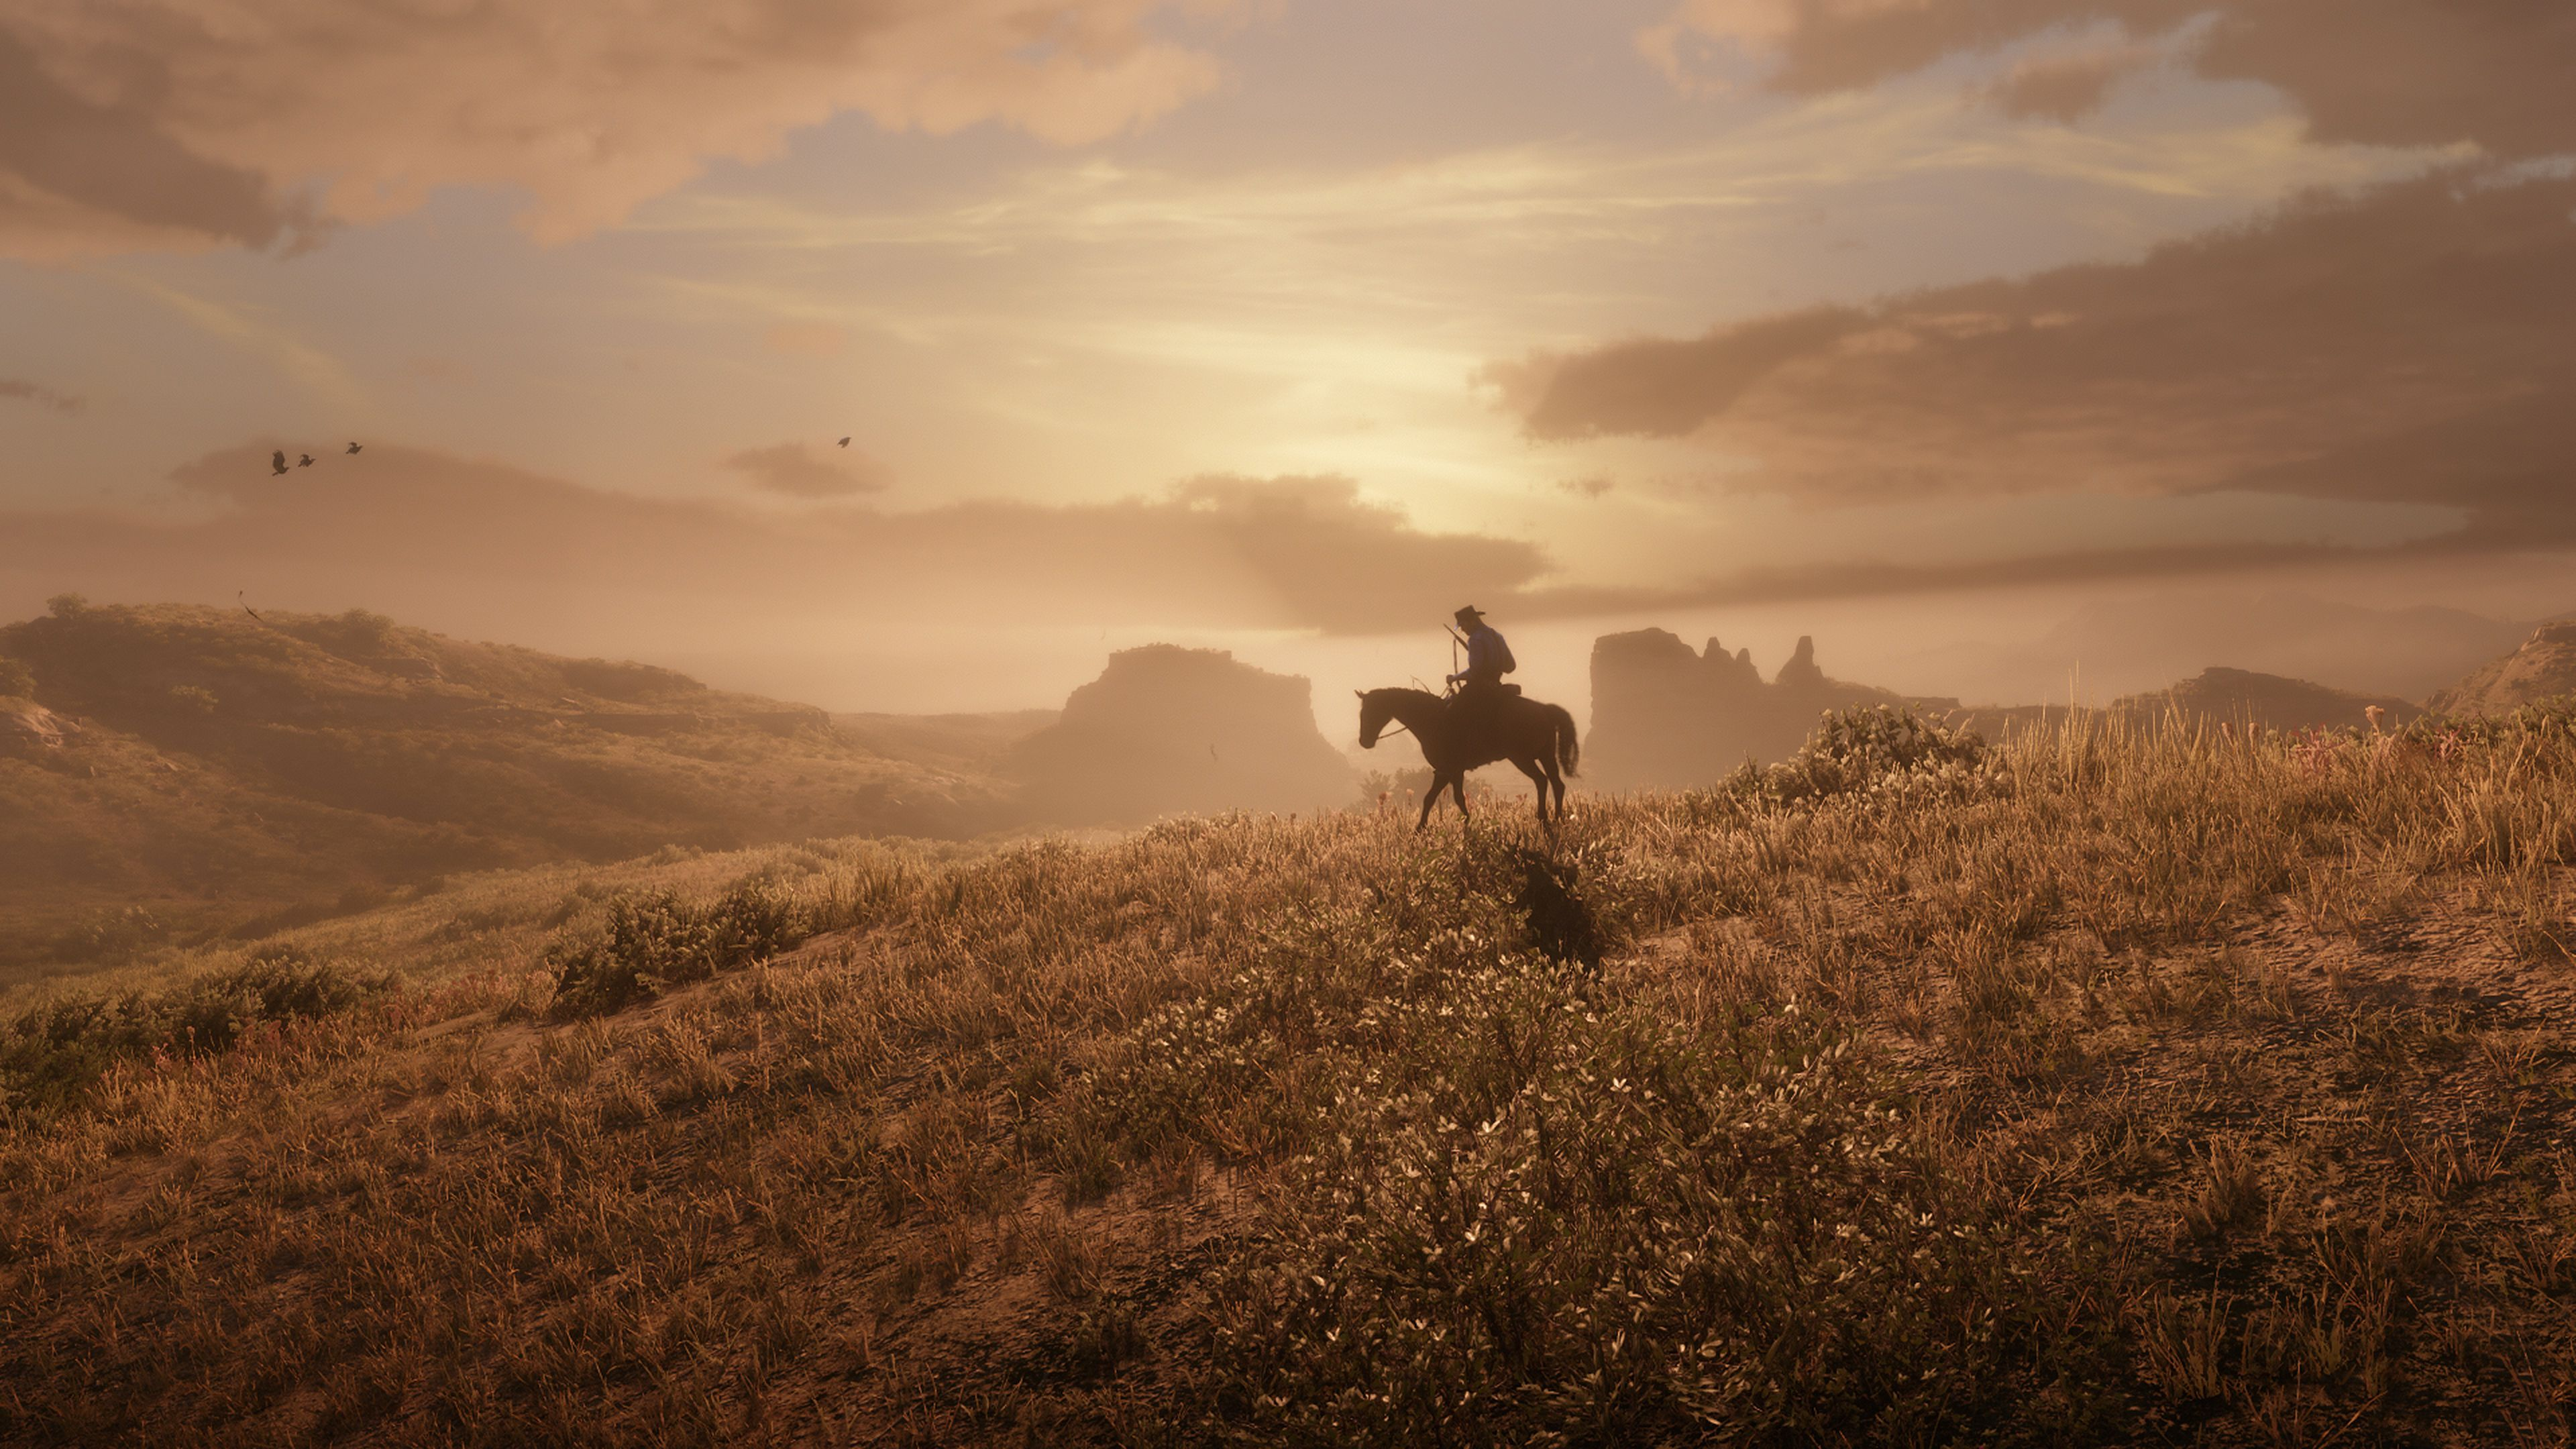 Red Dead Redemption 2 Xbox One 4k Xbox Games Wallpapers Red Dead Redemption 2 Wallpapers Hd Wallp In 2020 Red Dead Online Red Dead Redemption Red Dead Redemption Art